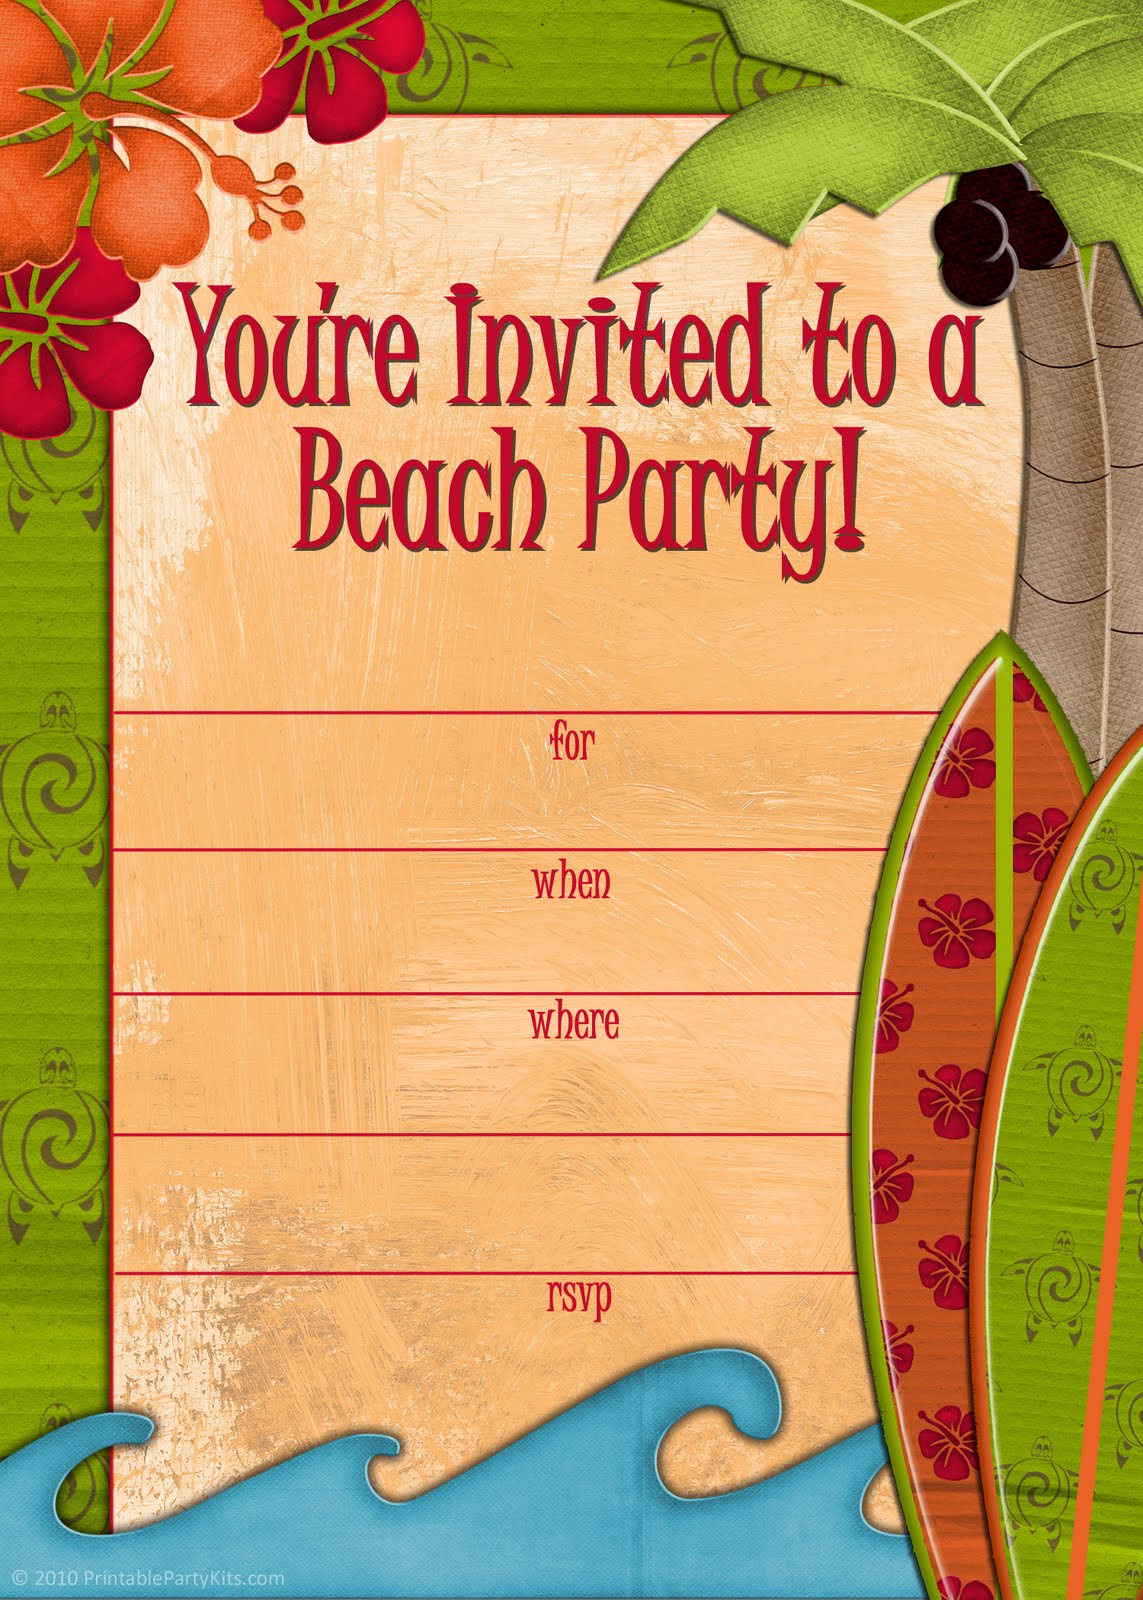 Click on the free beach party template to see it full size and